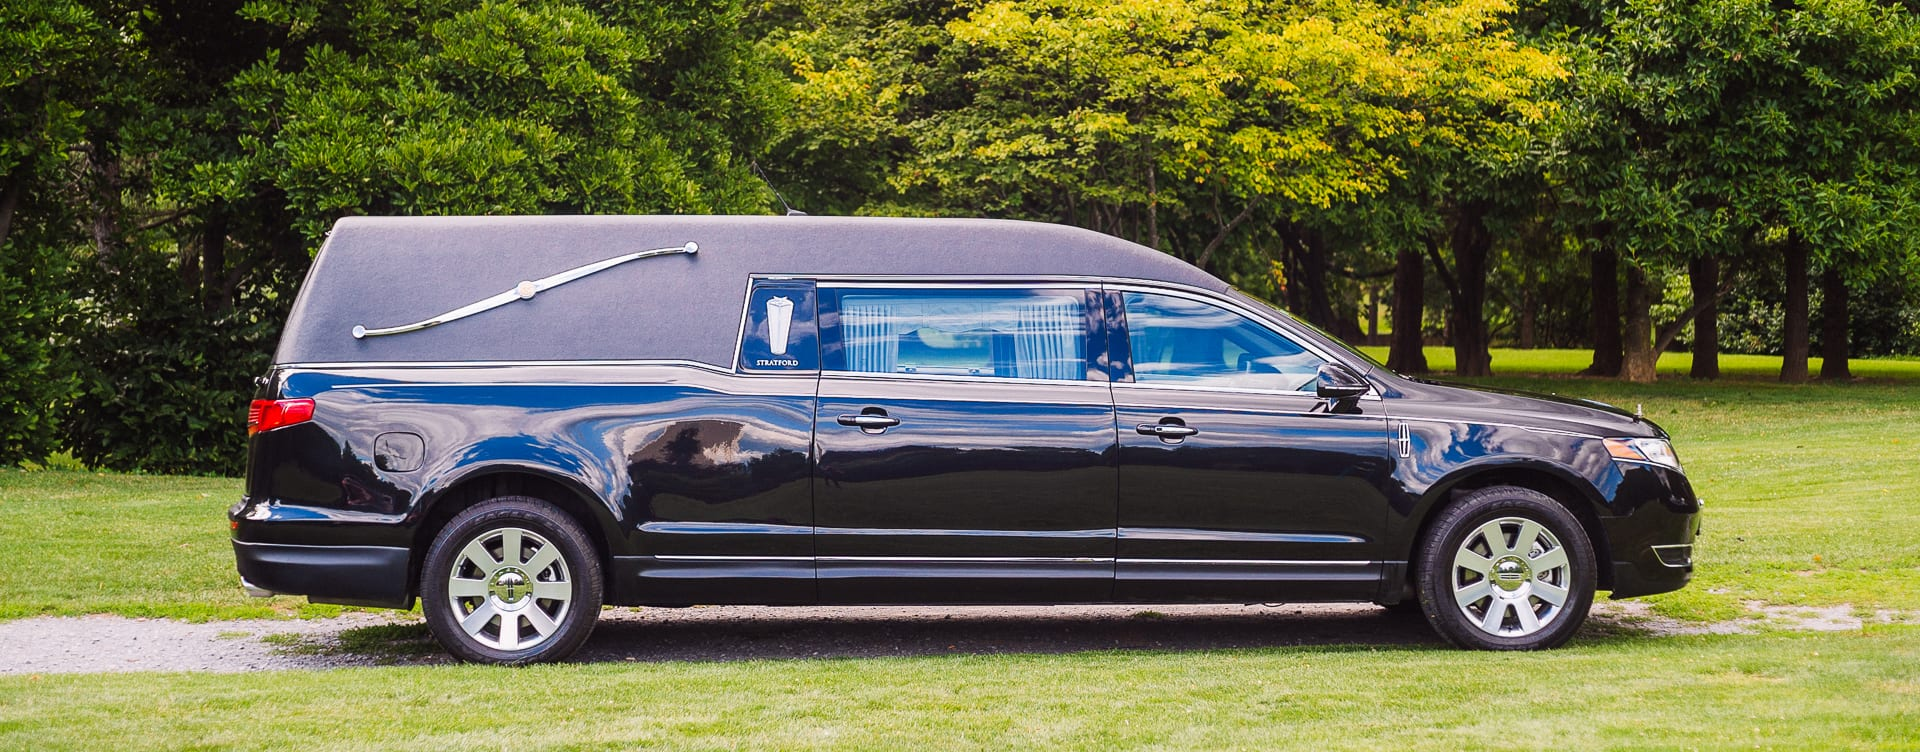 Funeral Limo - Metro Limousine Service